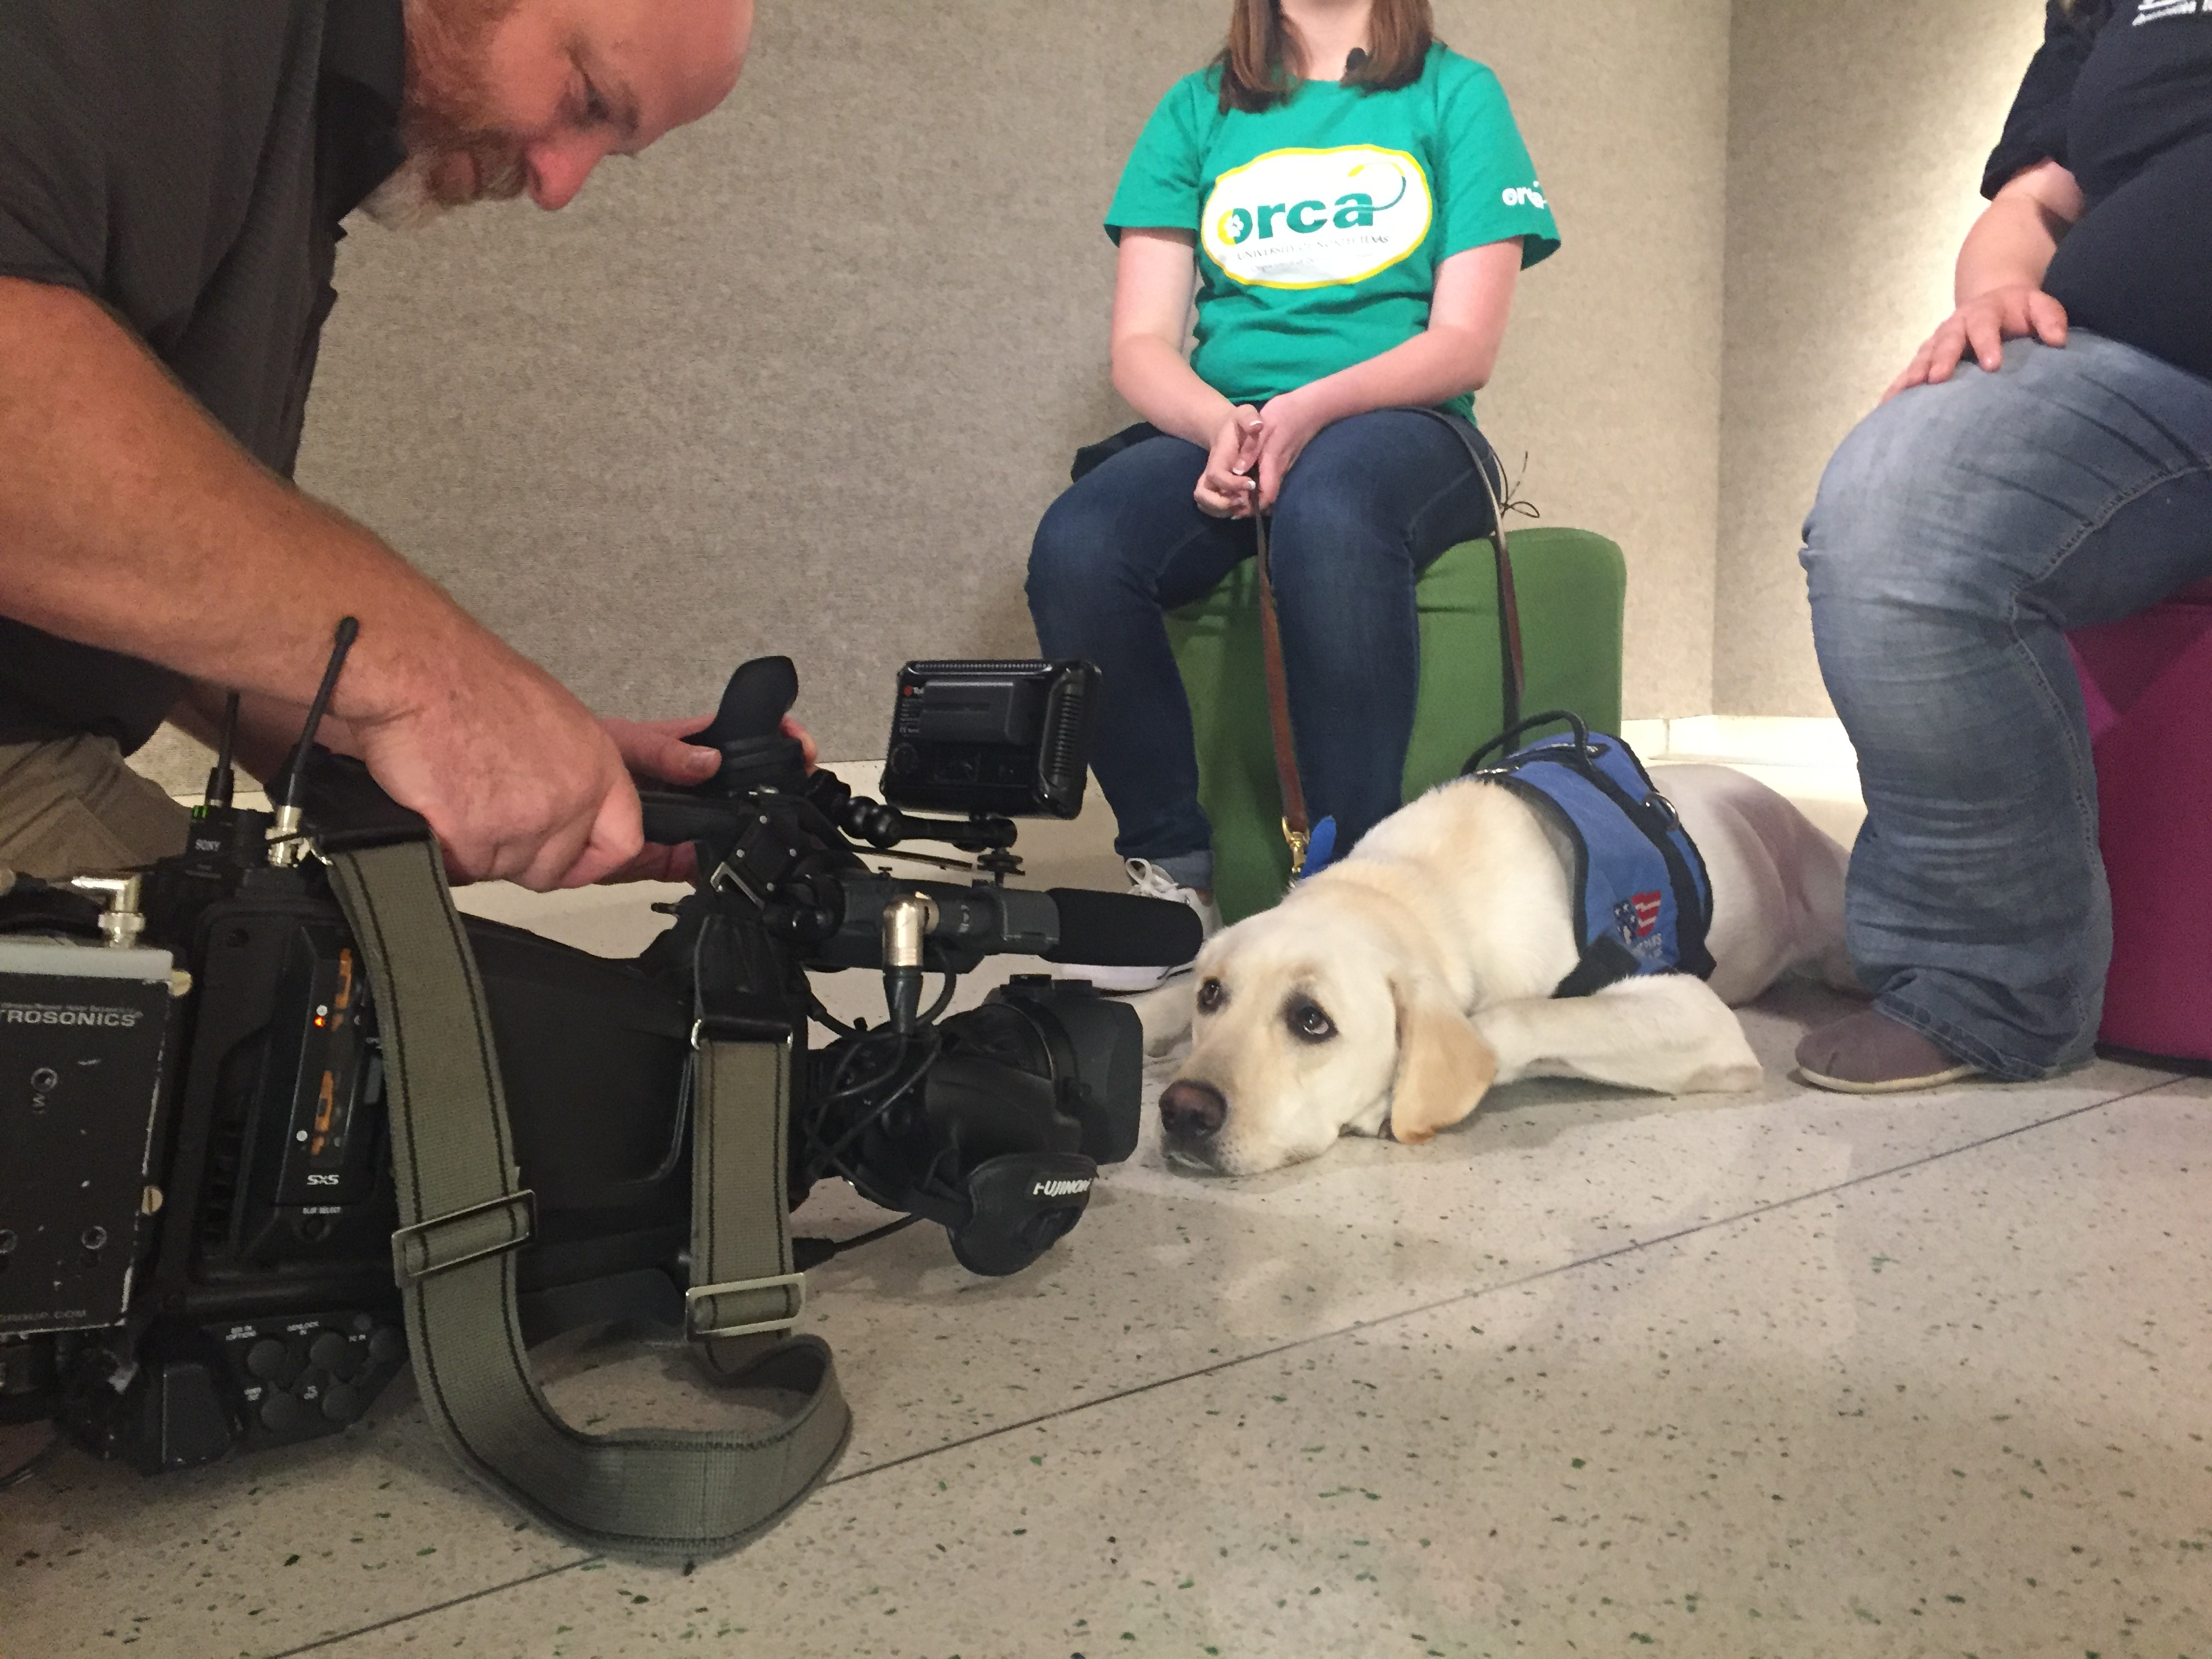 Drill Bit the Labrador retriever, during a TV interview